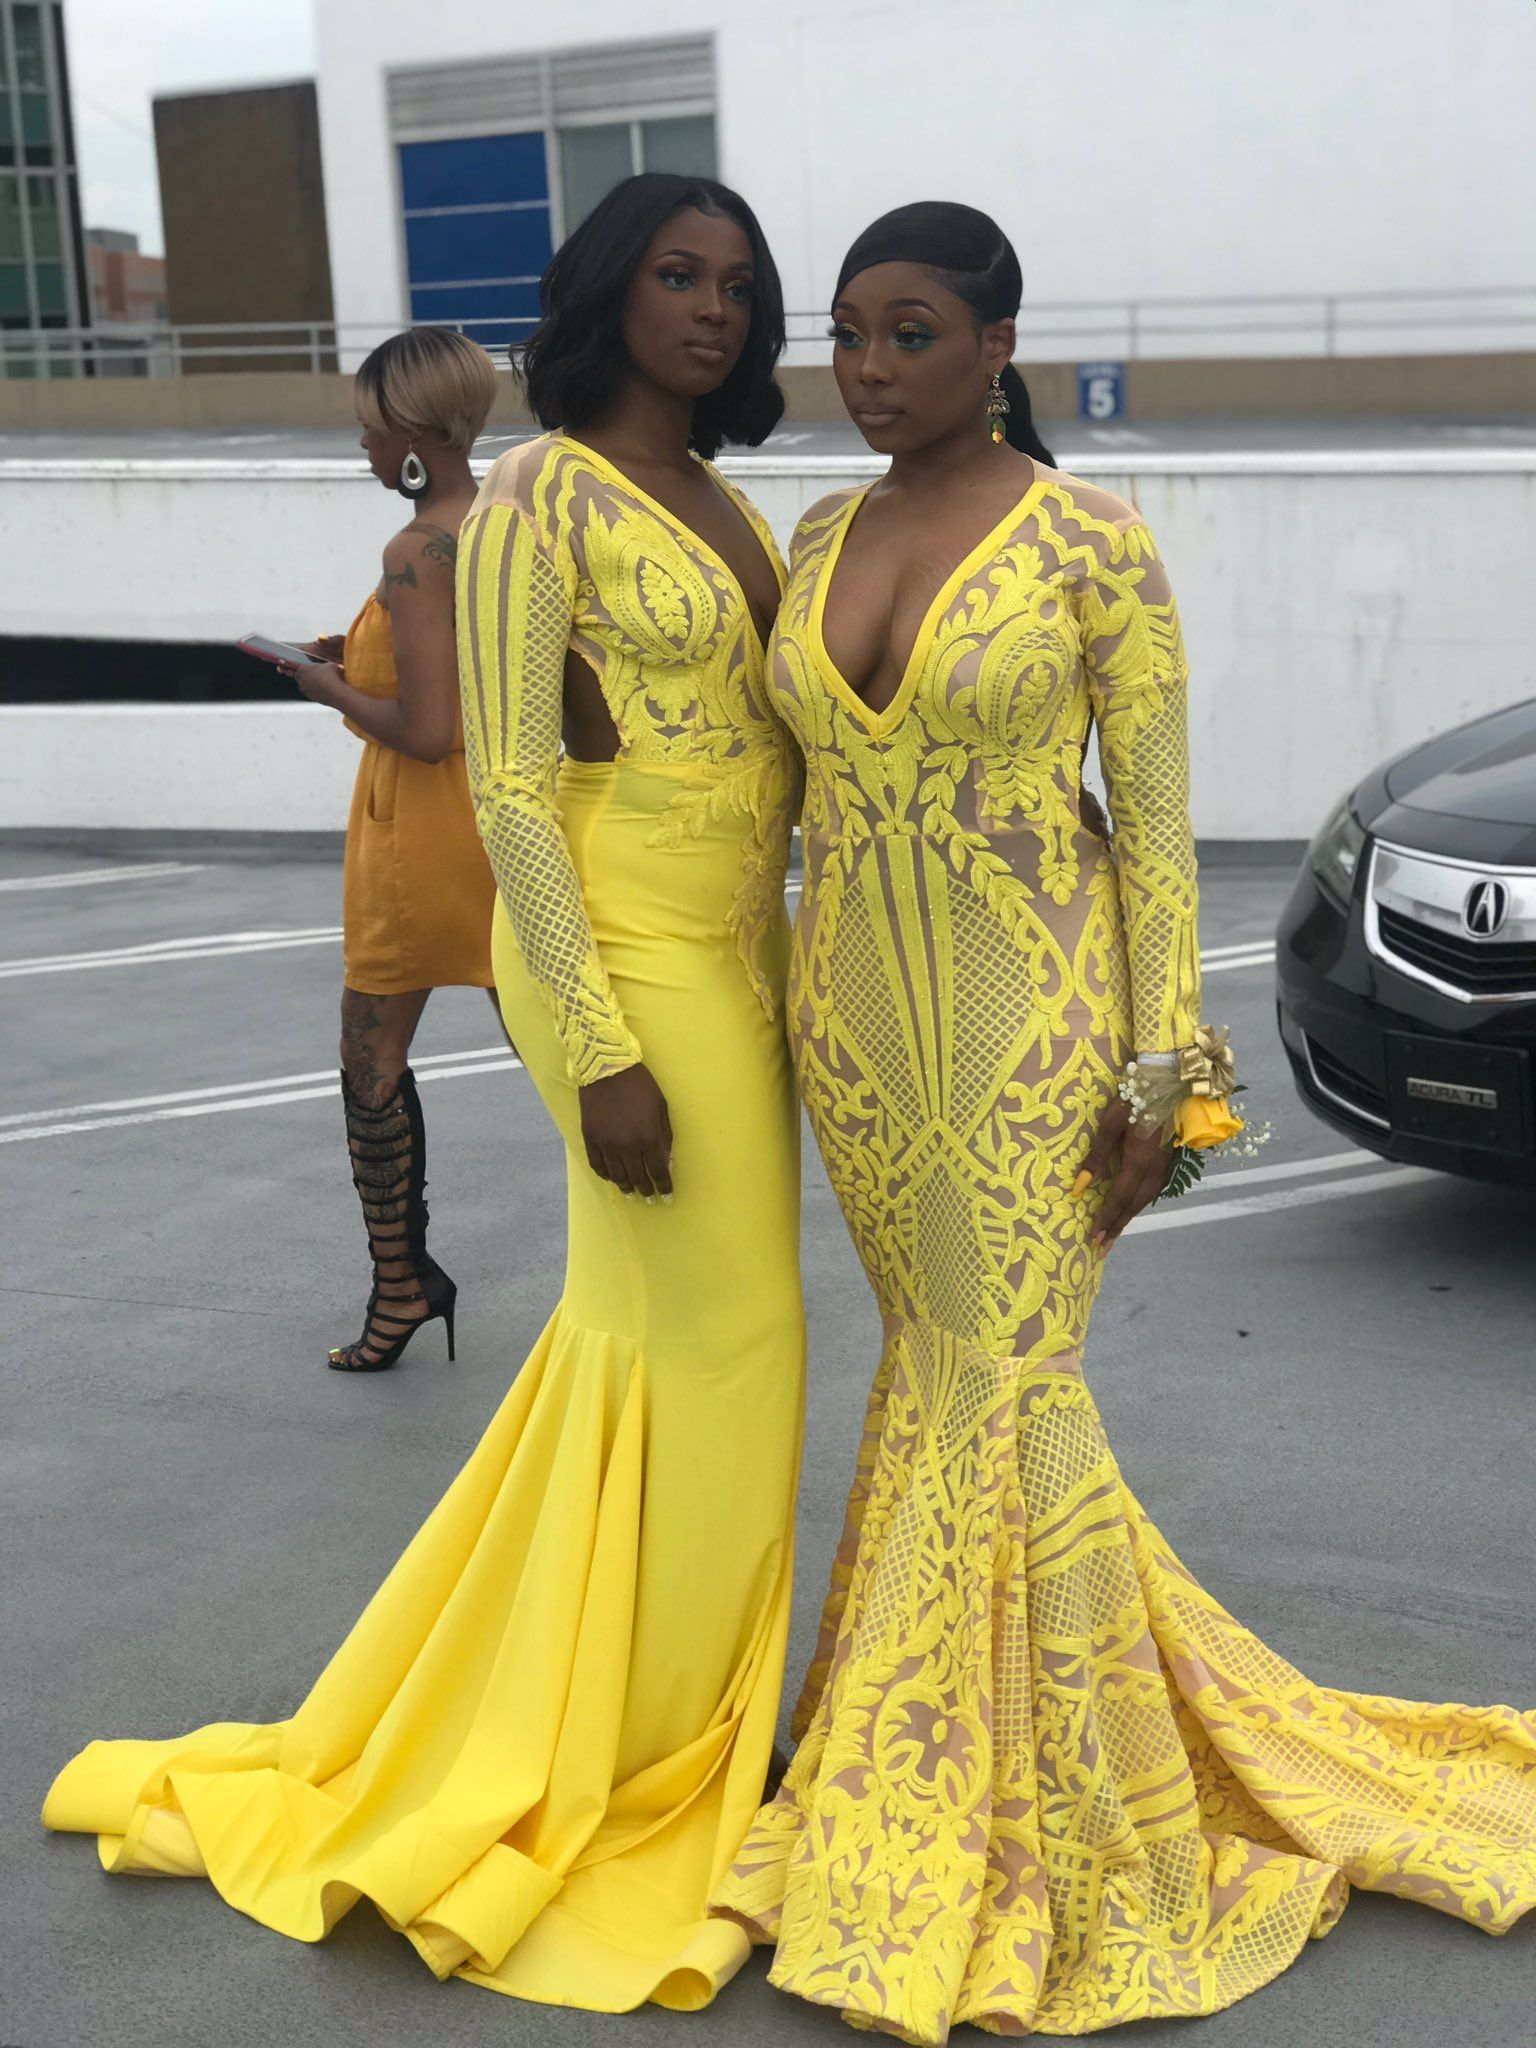 Pin By Zakia Chanell Lifestyle Fa On Prom Prom Outfits Prom Dresses Yellow Prom Girl Dresses [ 2048 x 1536 Pixel ]